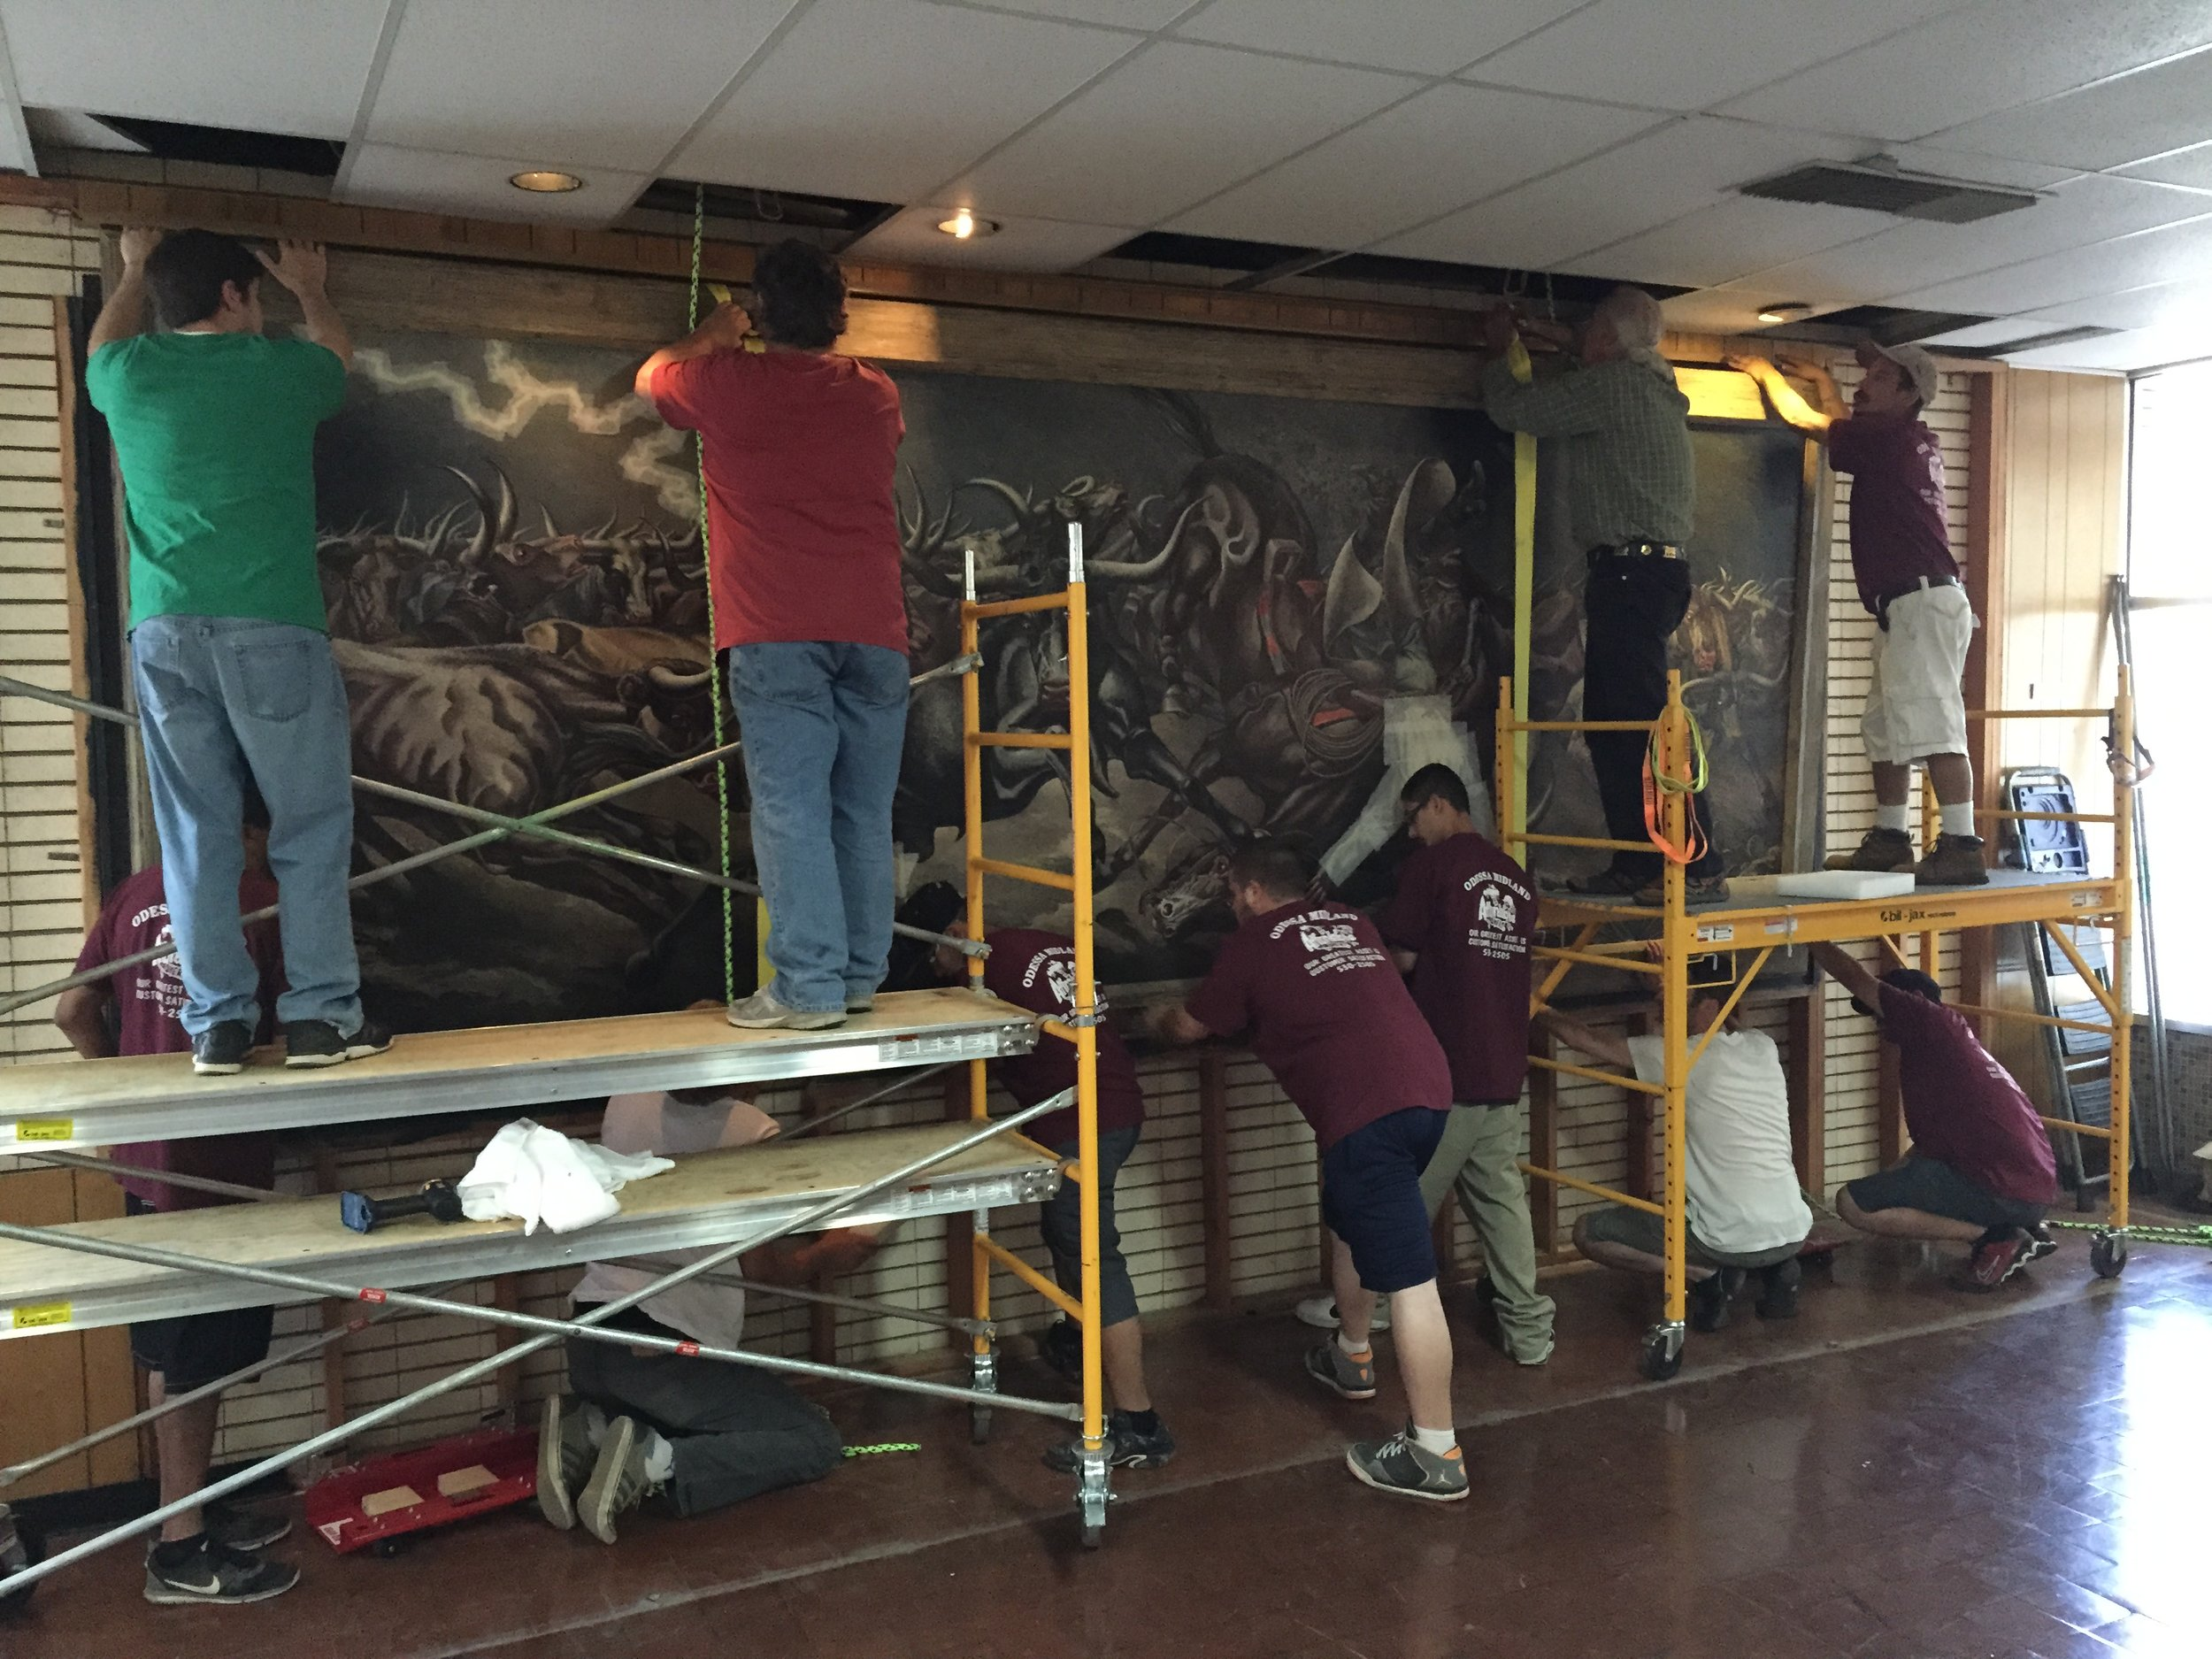 The Tom Lea mural being removed for restoration. - July 30, 2015